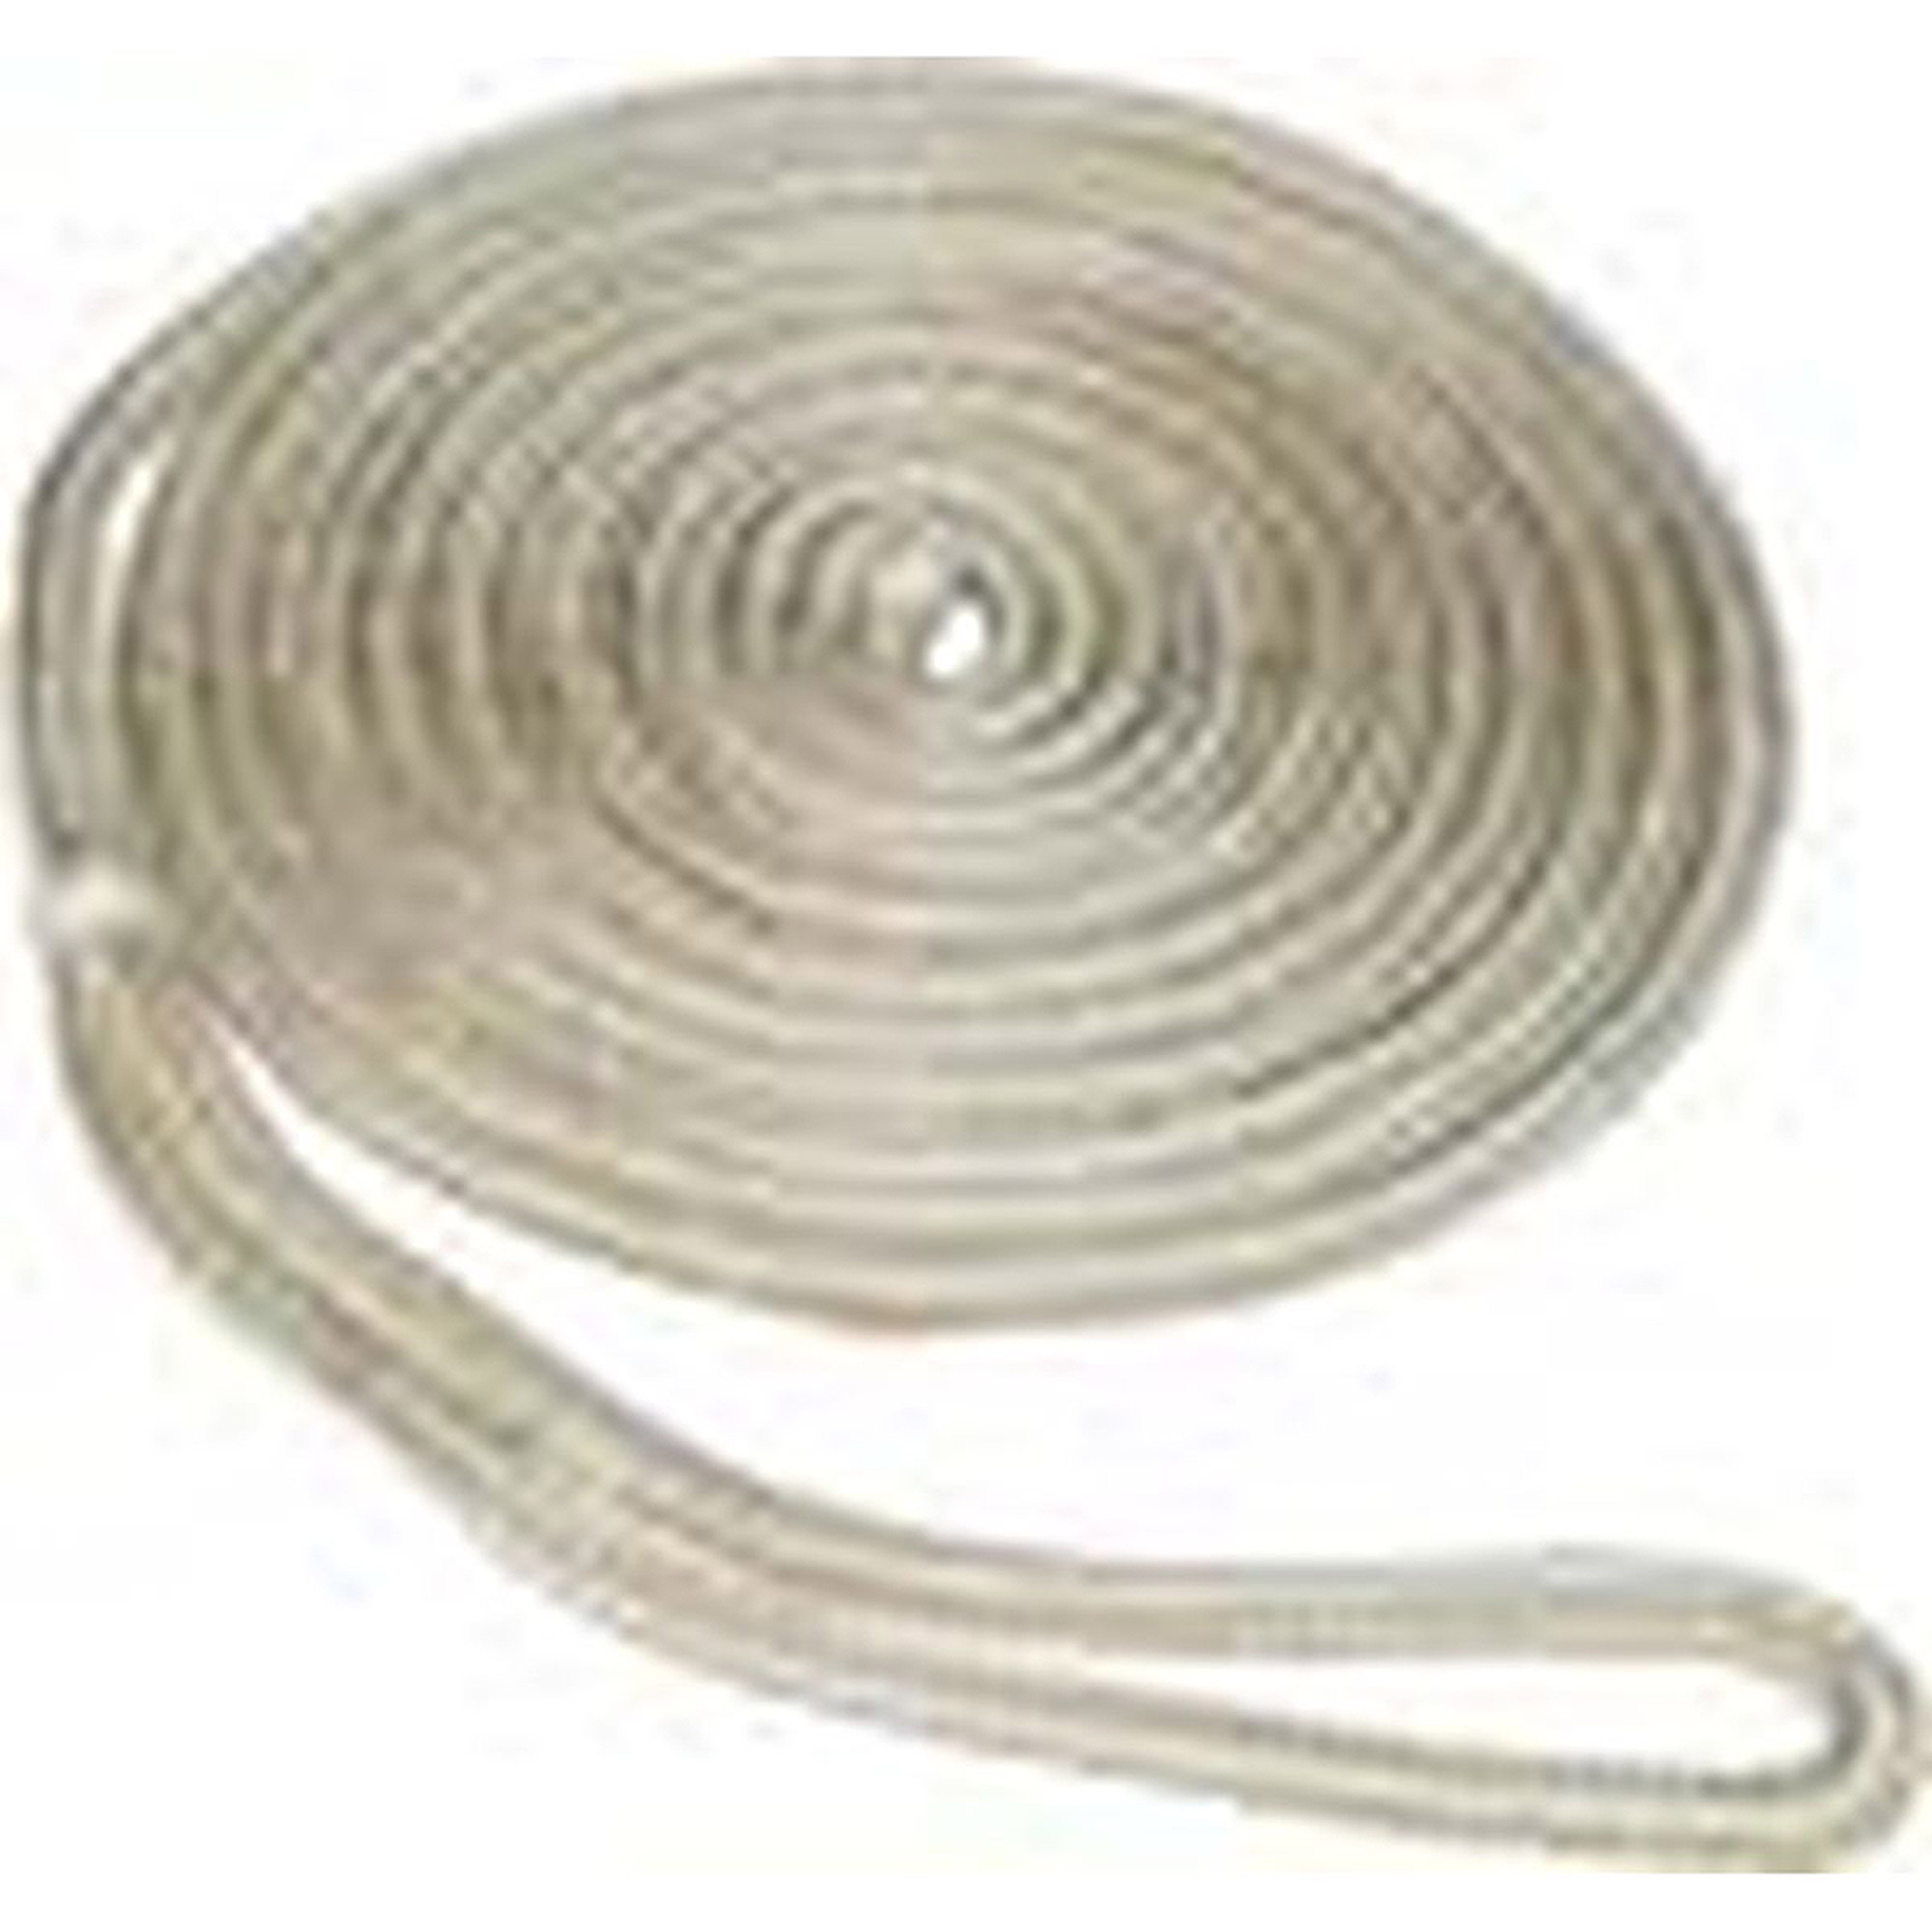 "SeaSense Double Braid Nylon Dock Line, 1 2"" x 35', 12"" Eye, Gold White by Generic"